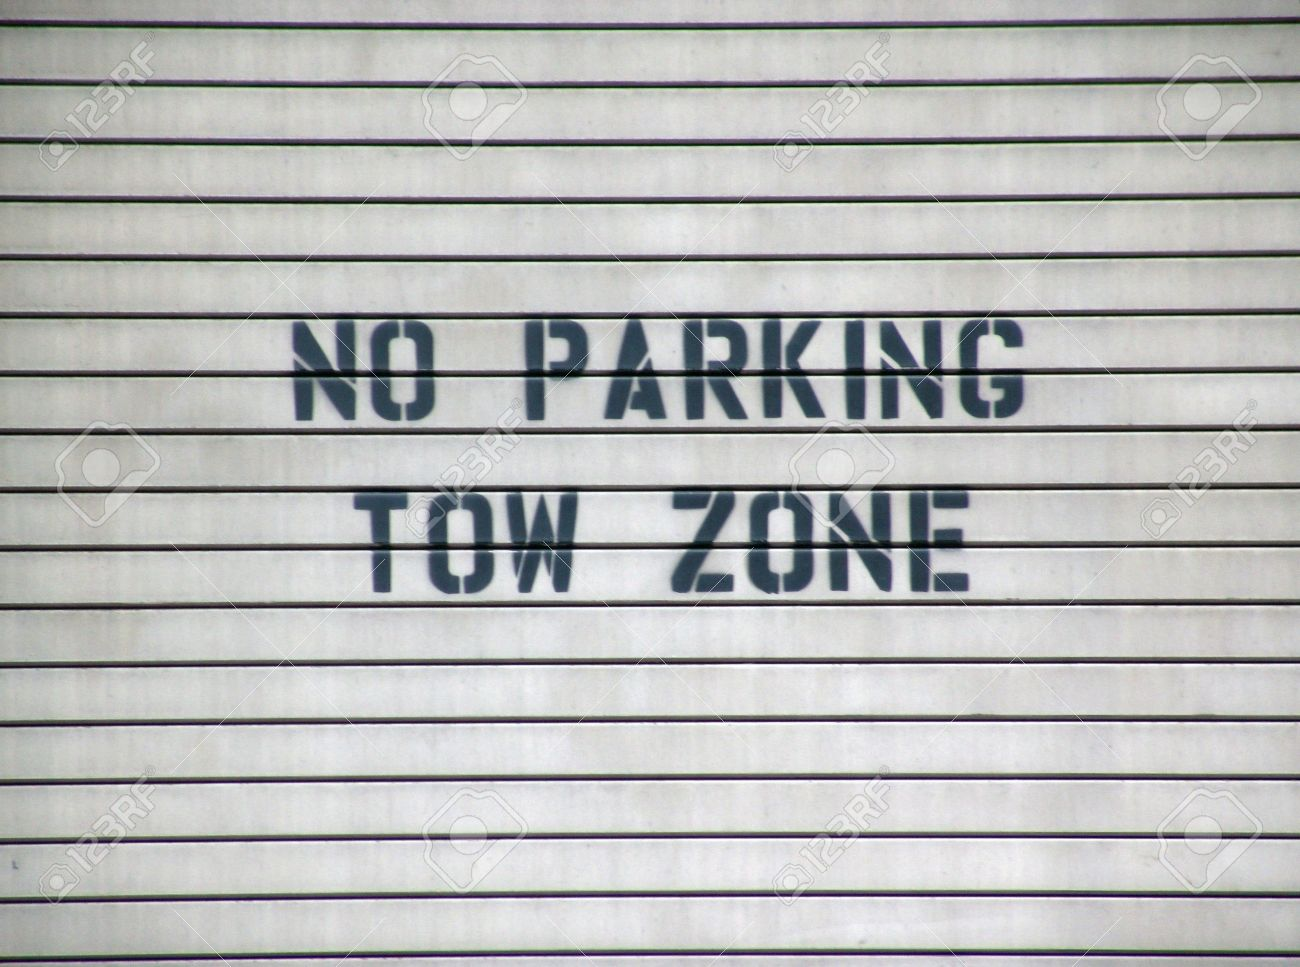 Garage Door Sign No Parking Tow Zone Black On Gray With Slats Stock